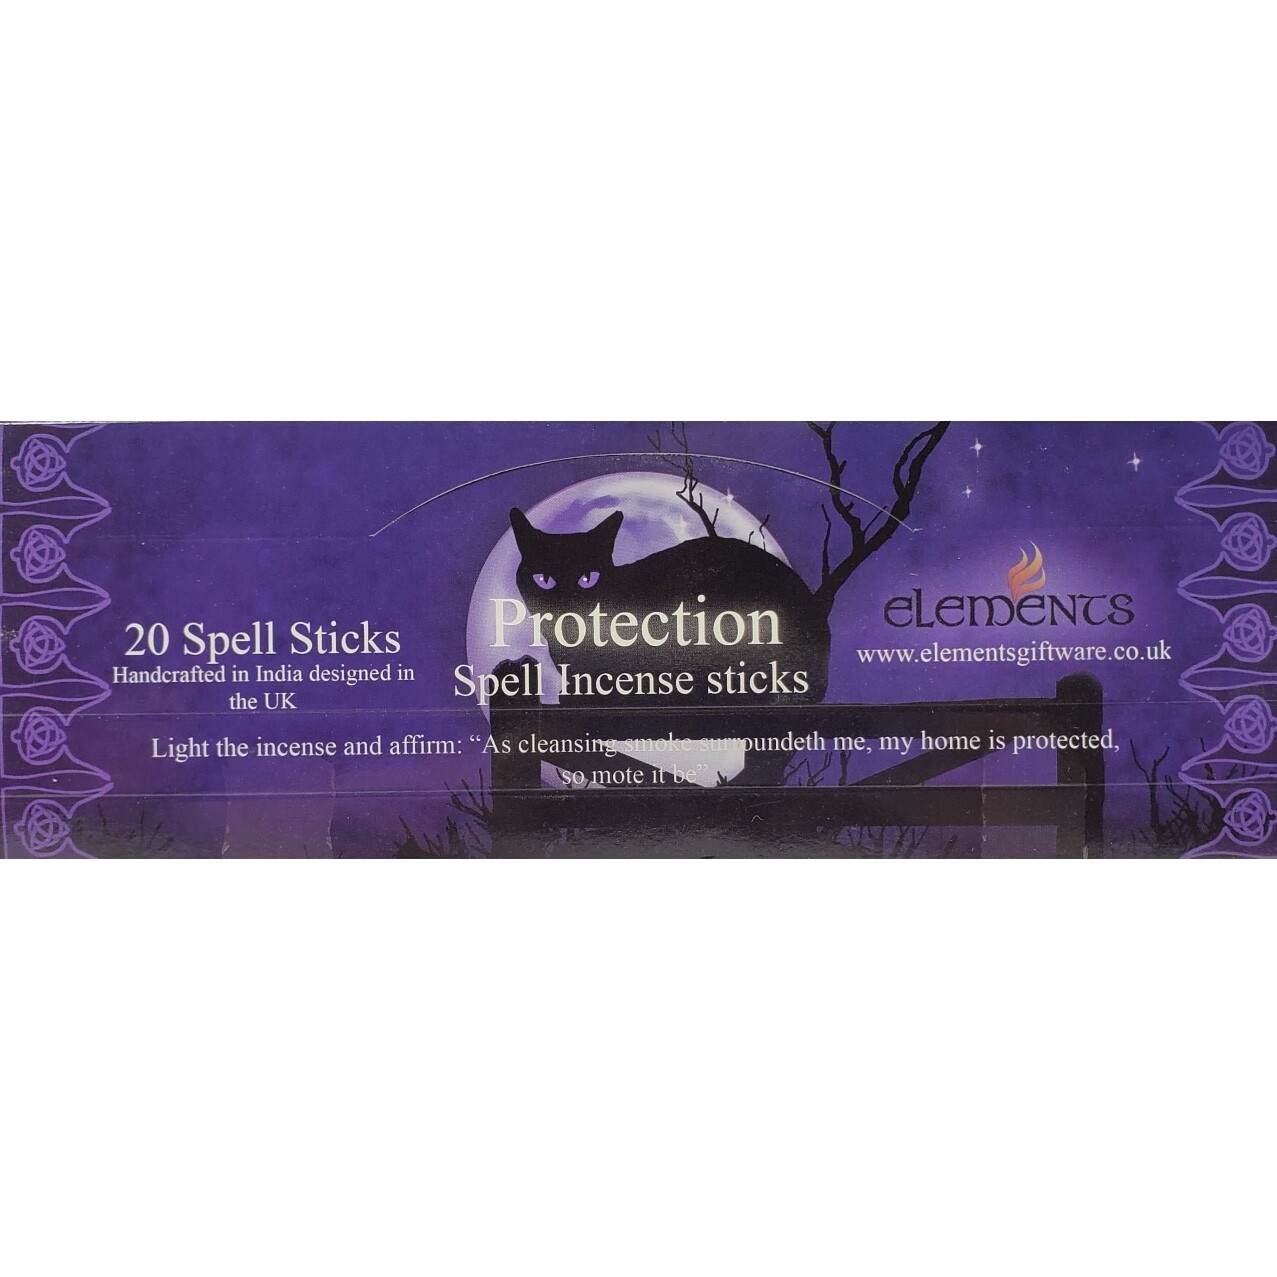 PROTECTION SPELL INCENSE